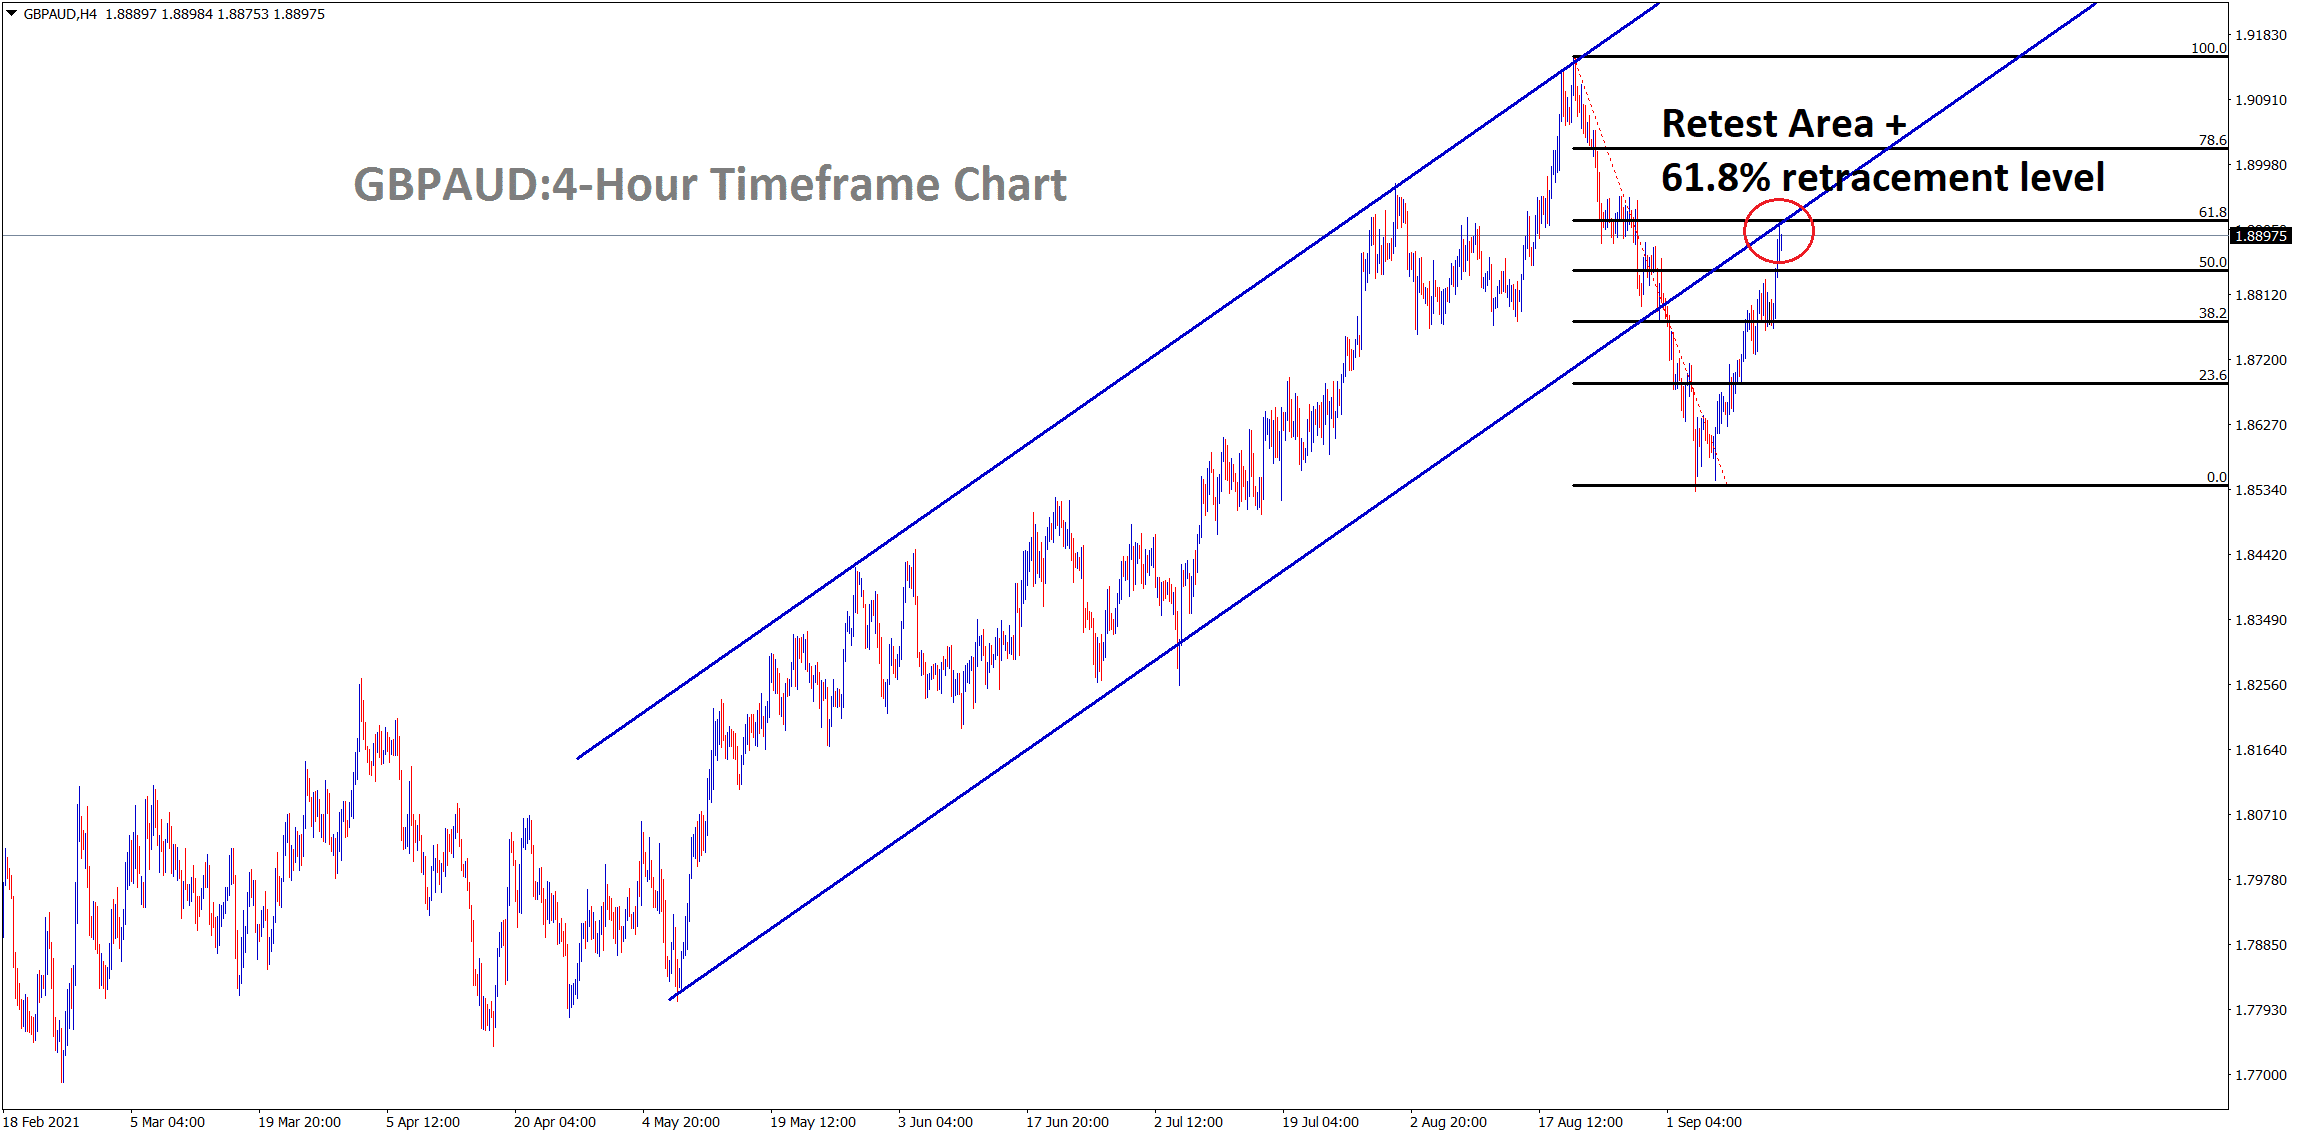 GBPAUD is standing at the retest area of the broken Ascending channel and 61.8 retracement made